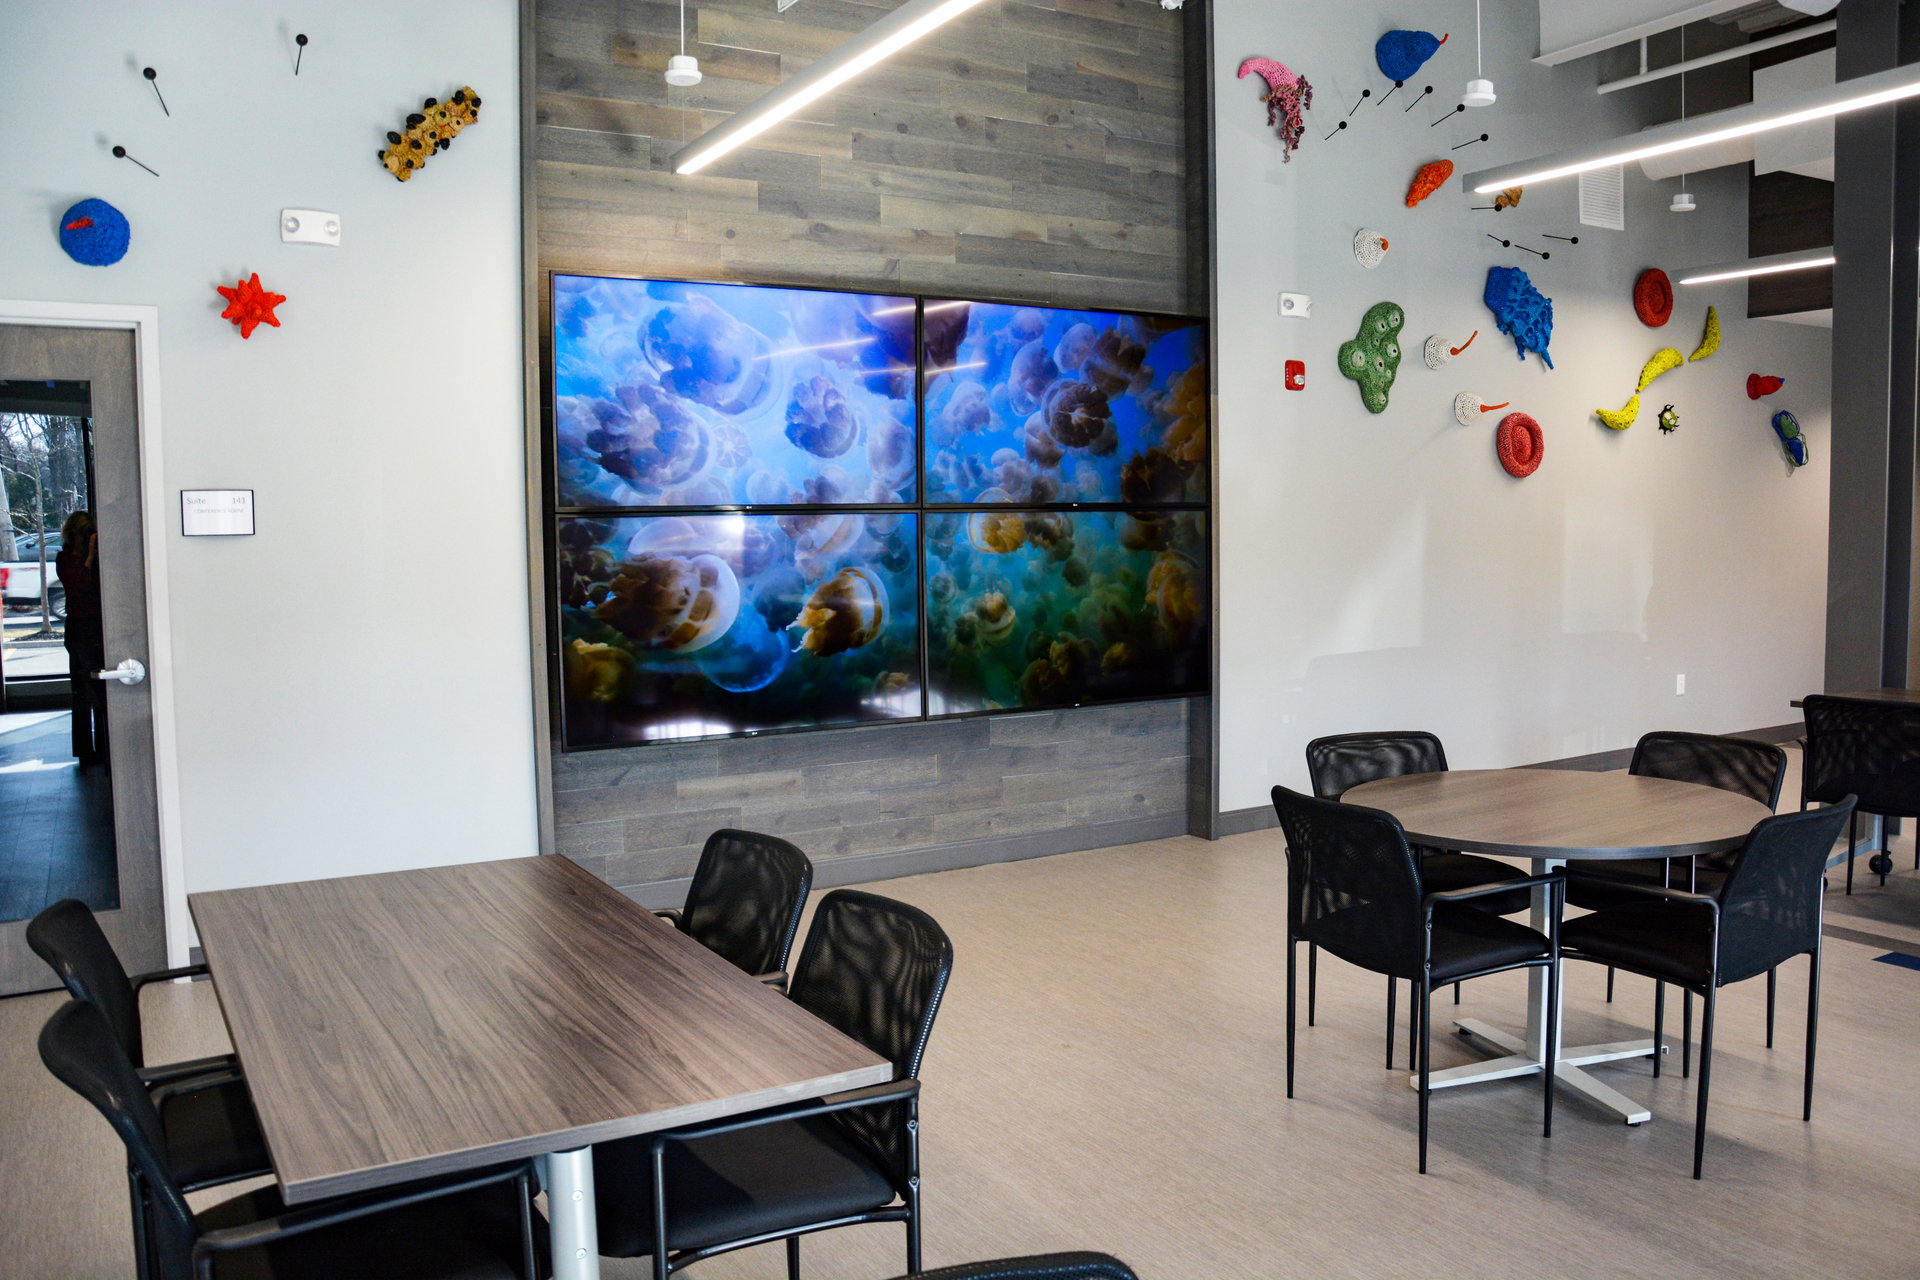 At ABI-LAB 2, where community lies at the core of their culture, every floor features local artisans.  Each piece of art is made from natural or recycled materials, depicting aspects of life science on a micro or macro level.